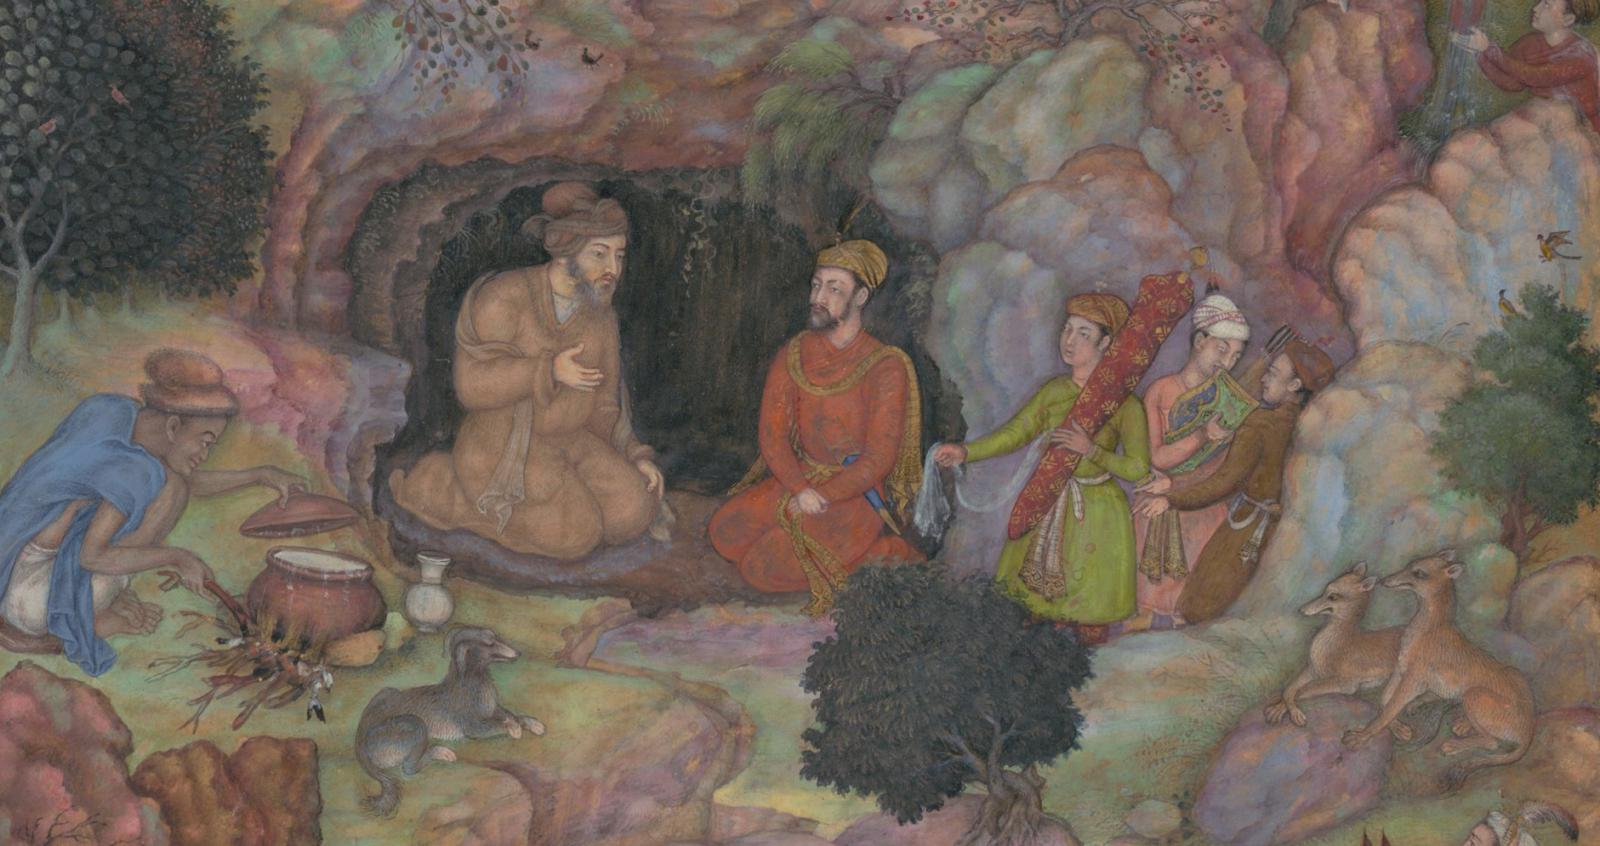 """Alexander Visits the Sage Plato in his Mountain Cave"" (detail), Folio from a Khamsa (Quintet) of Amir Khusrau Dihlavi (1597-98). Photo: © Metropolitan Museum of Art, New York."